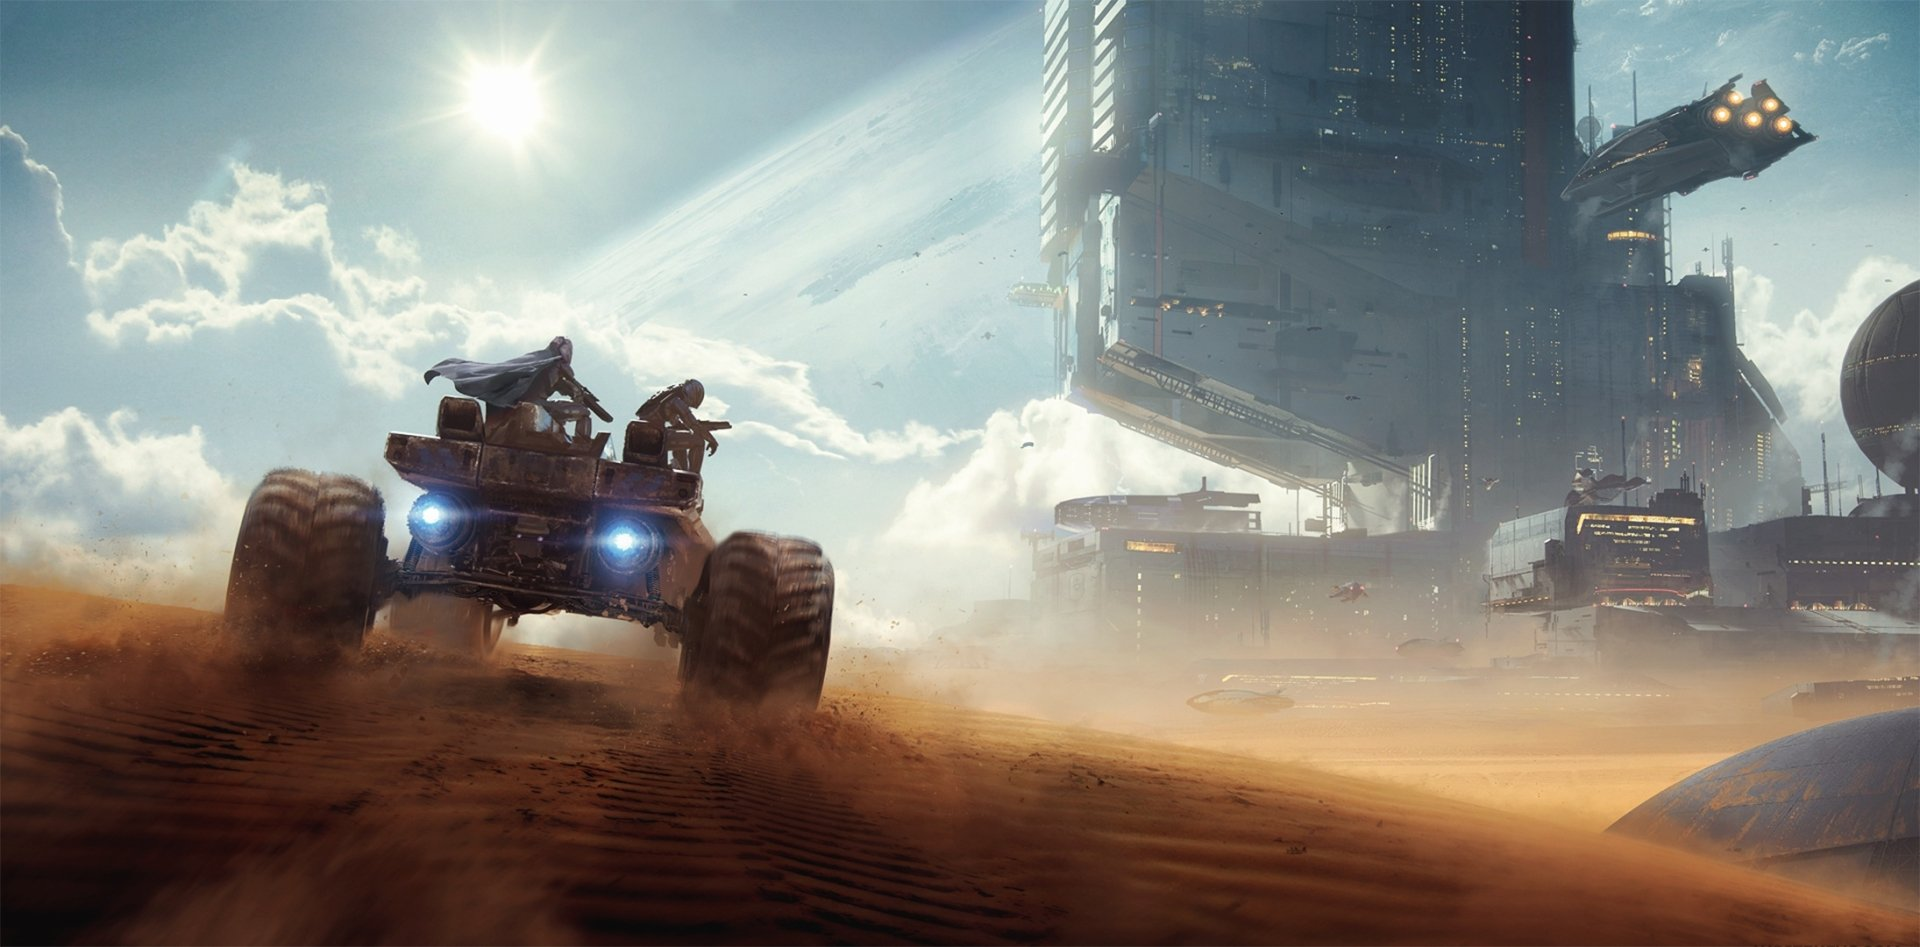 Sci Fi - Vehicle  Sand Building Wallpaper